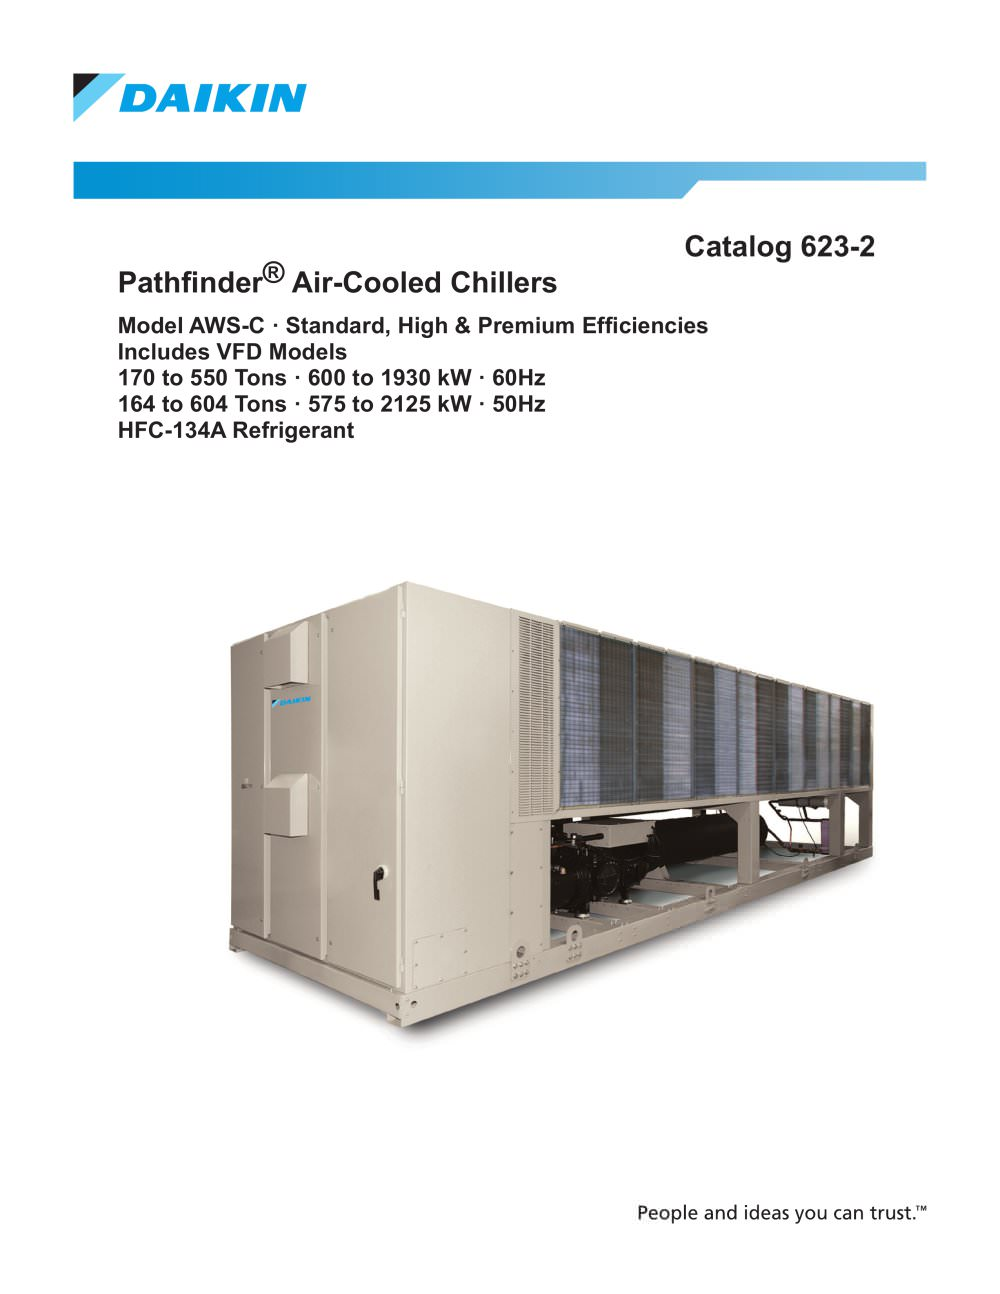 cat 623 2 pathfinder aws air cooled screw compressor chiller 582207_1b cat 623 2 pathfinder aws air cooled screw compressor chiller  at reclaimingppi.co